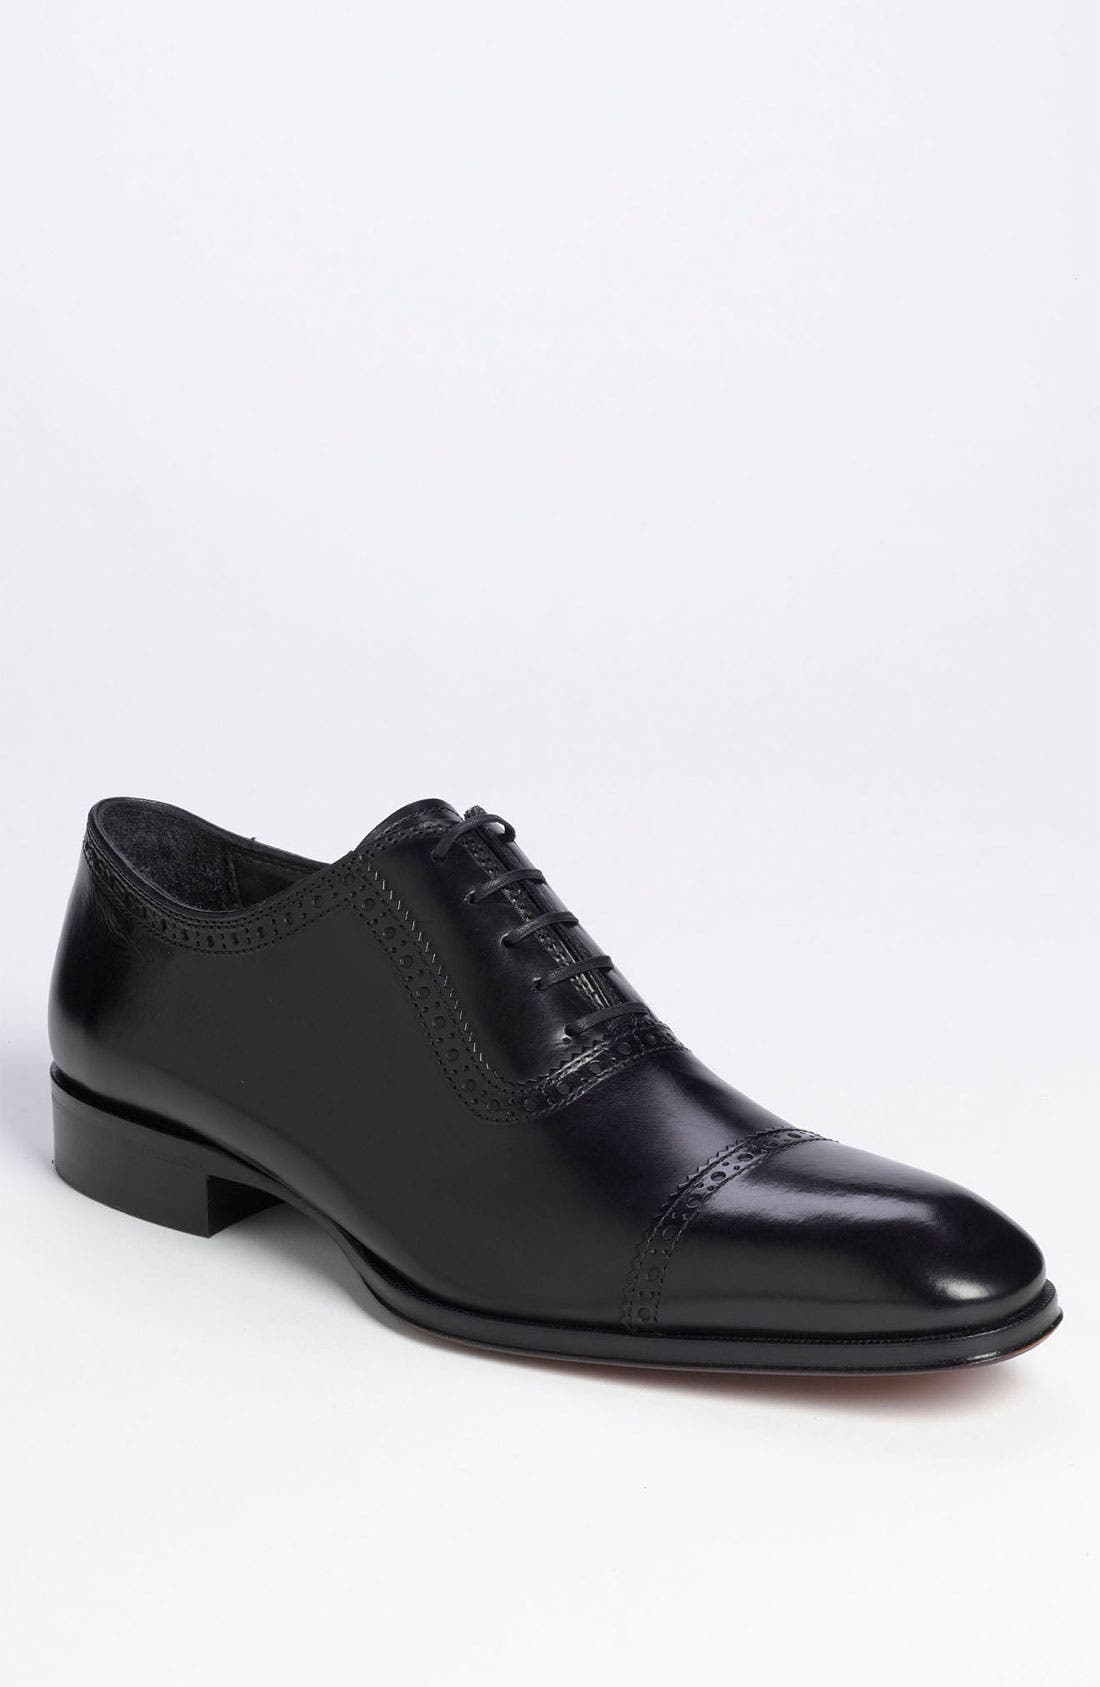 TO BOOT NEW YORK 'Warwick' Cap Toe Oxford, Main, color, 001